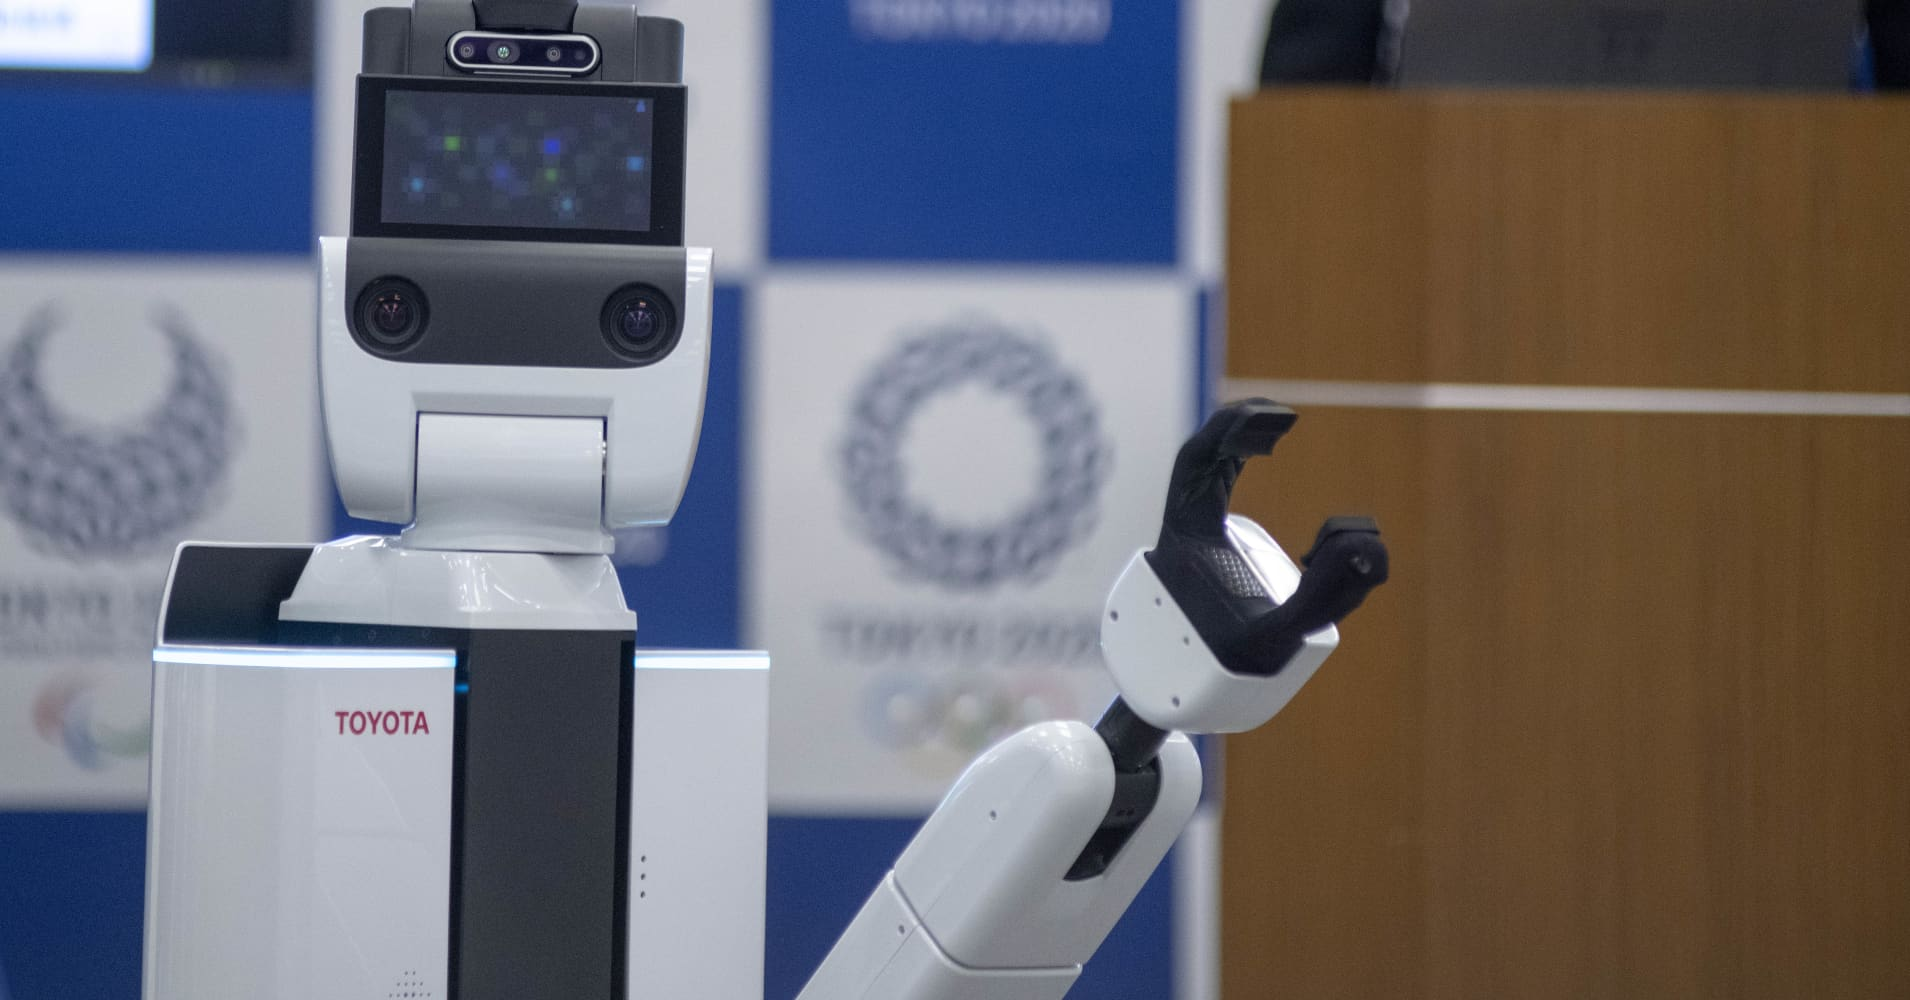 Robots built by Toyota are going to help visitors at the Tokyo 2020 Olympics